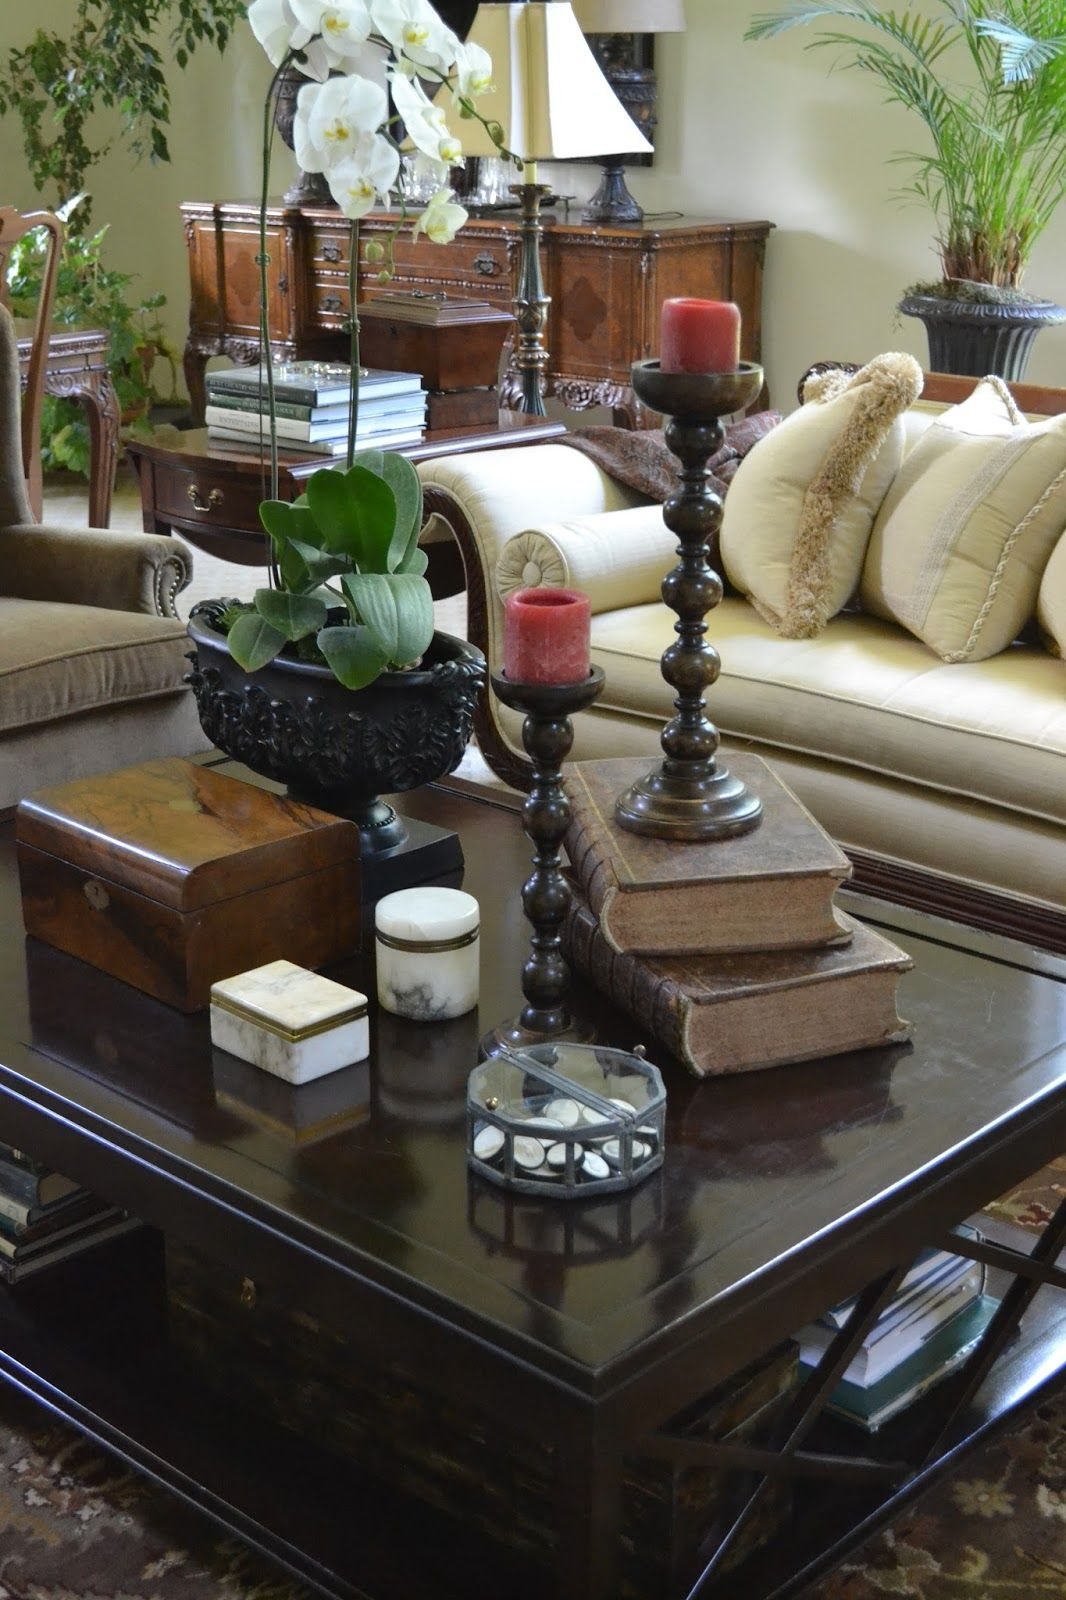 Interior Devor Decorating With Tea Cads A Caddy On The Side Table In Background As Well An Antique Inlaid Box Coffee